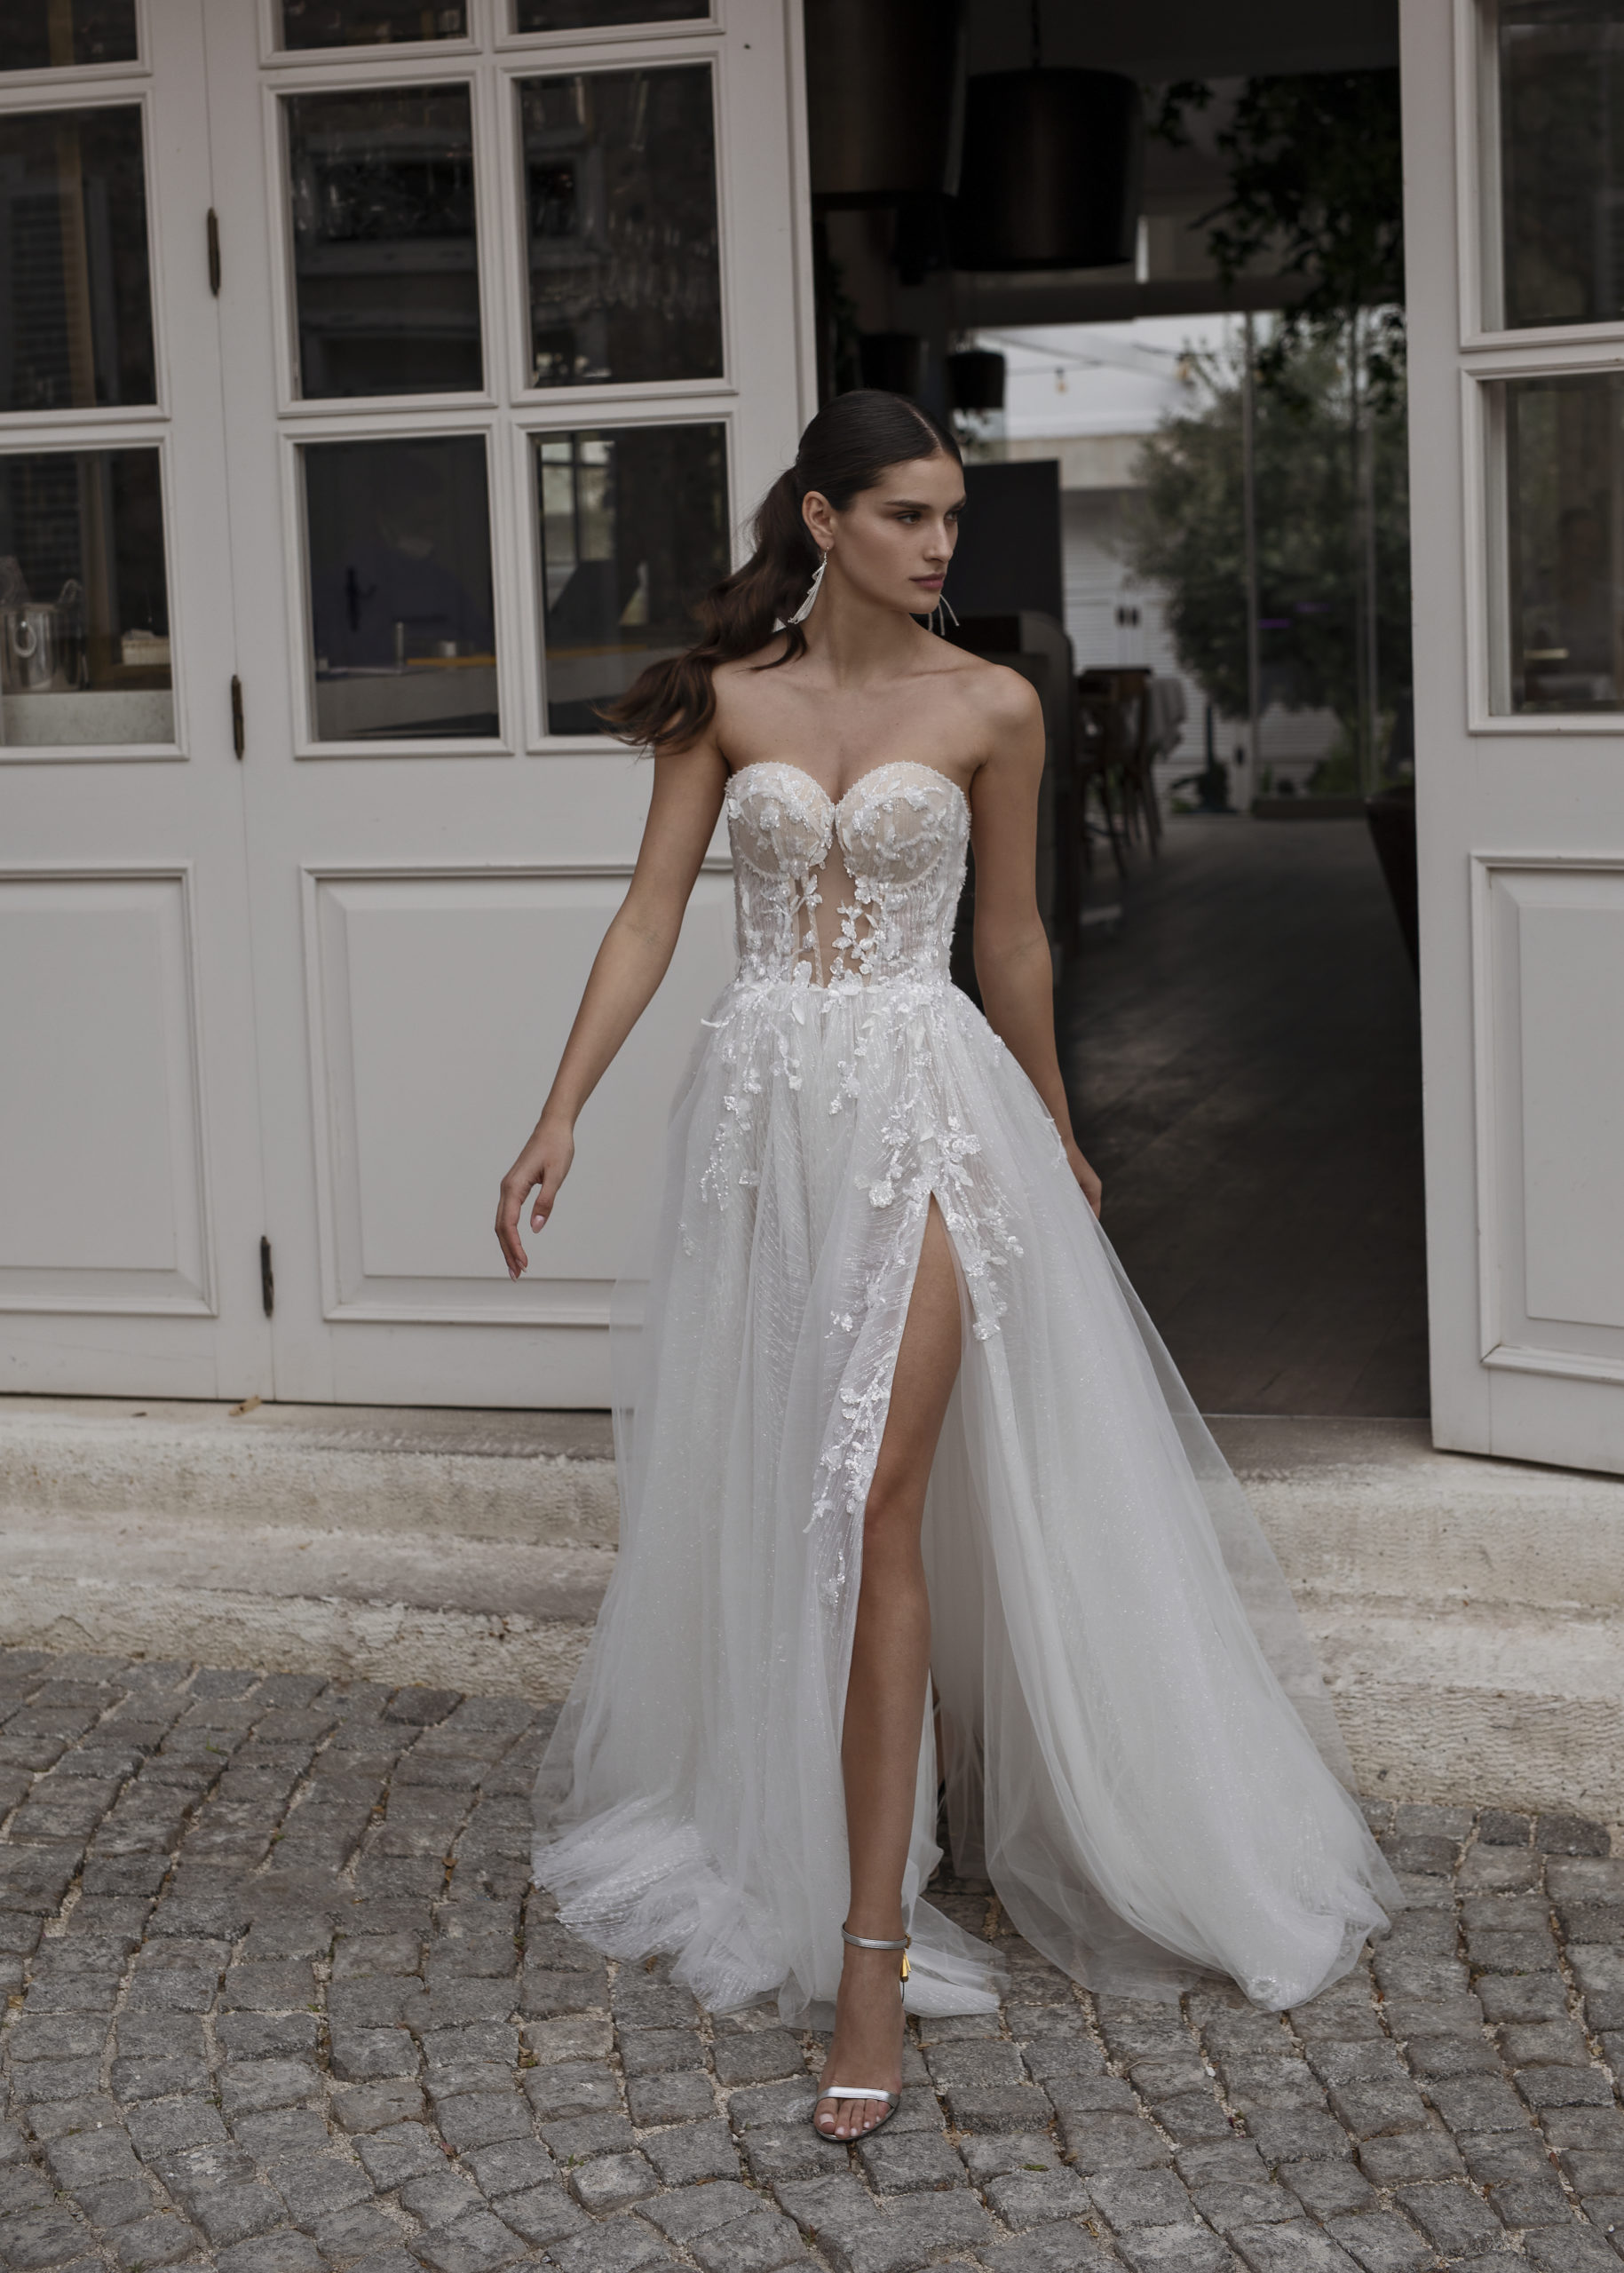 Robes nuptiales Genève Dominiss tulle blanche Berta dentelle fendue sexy bustier